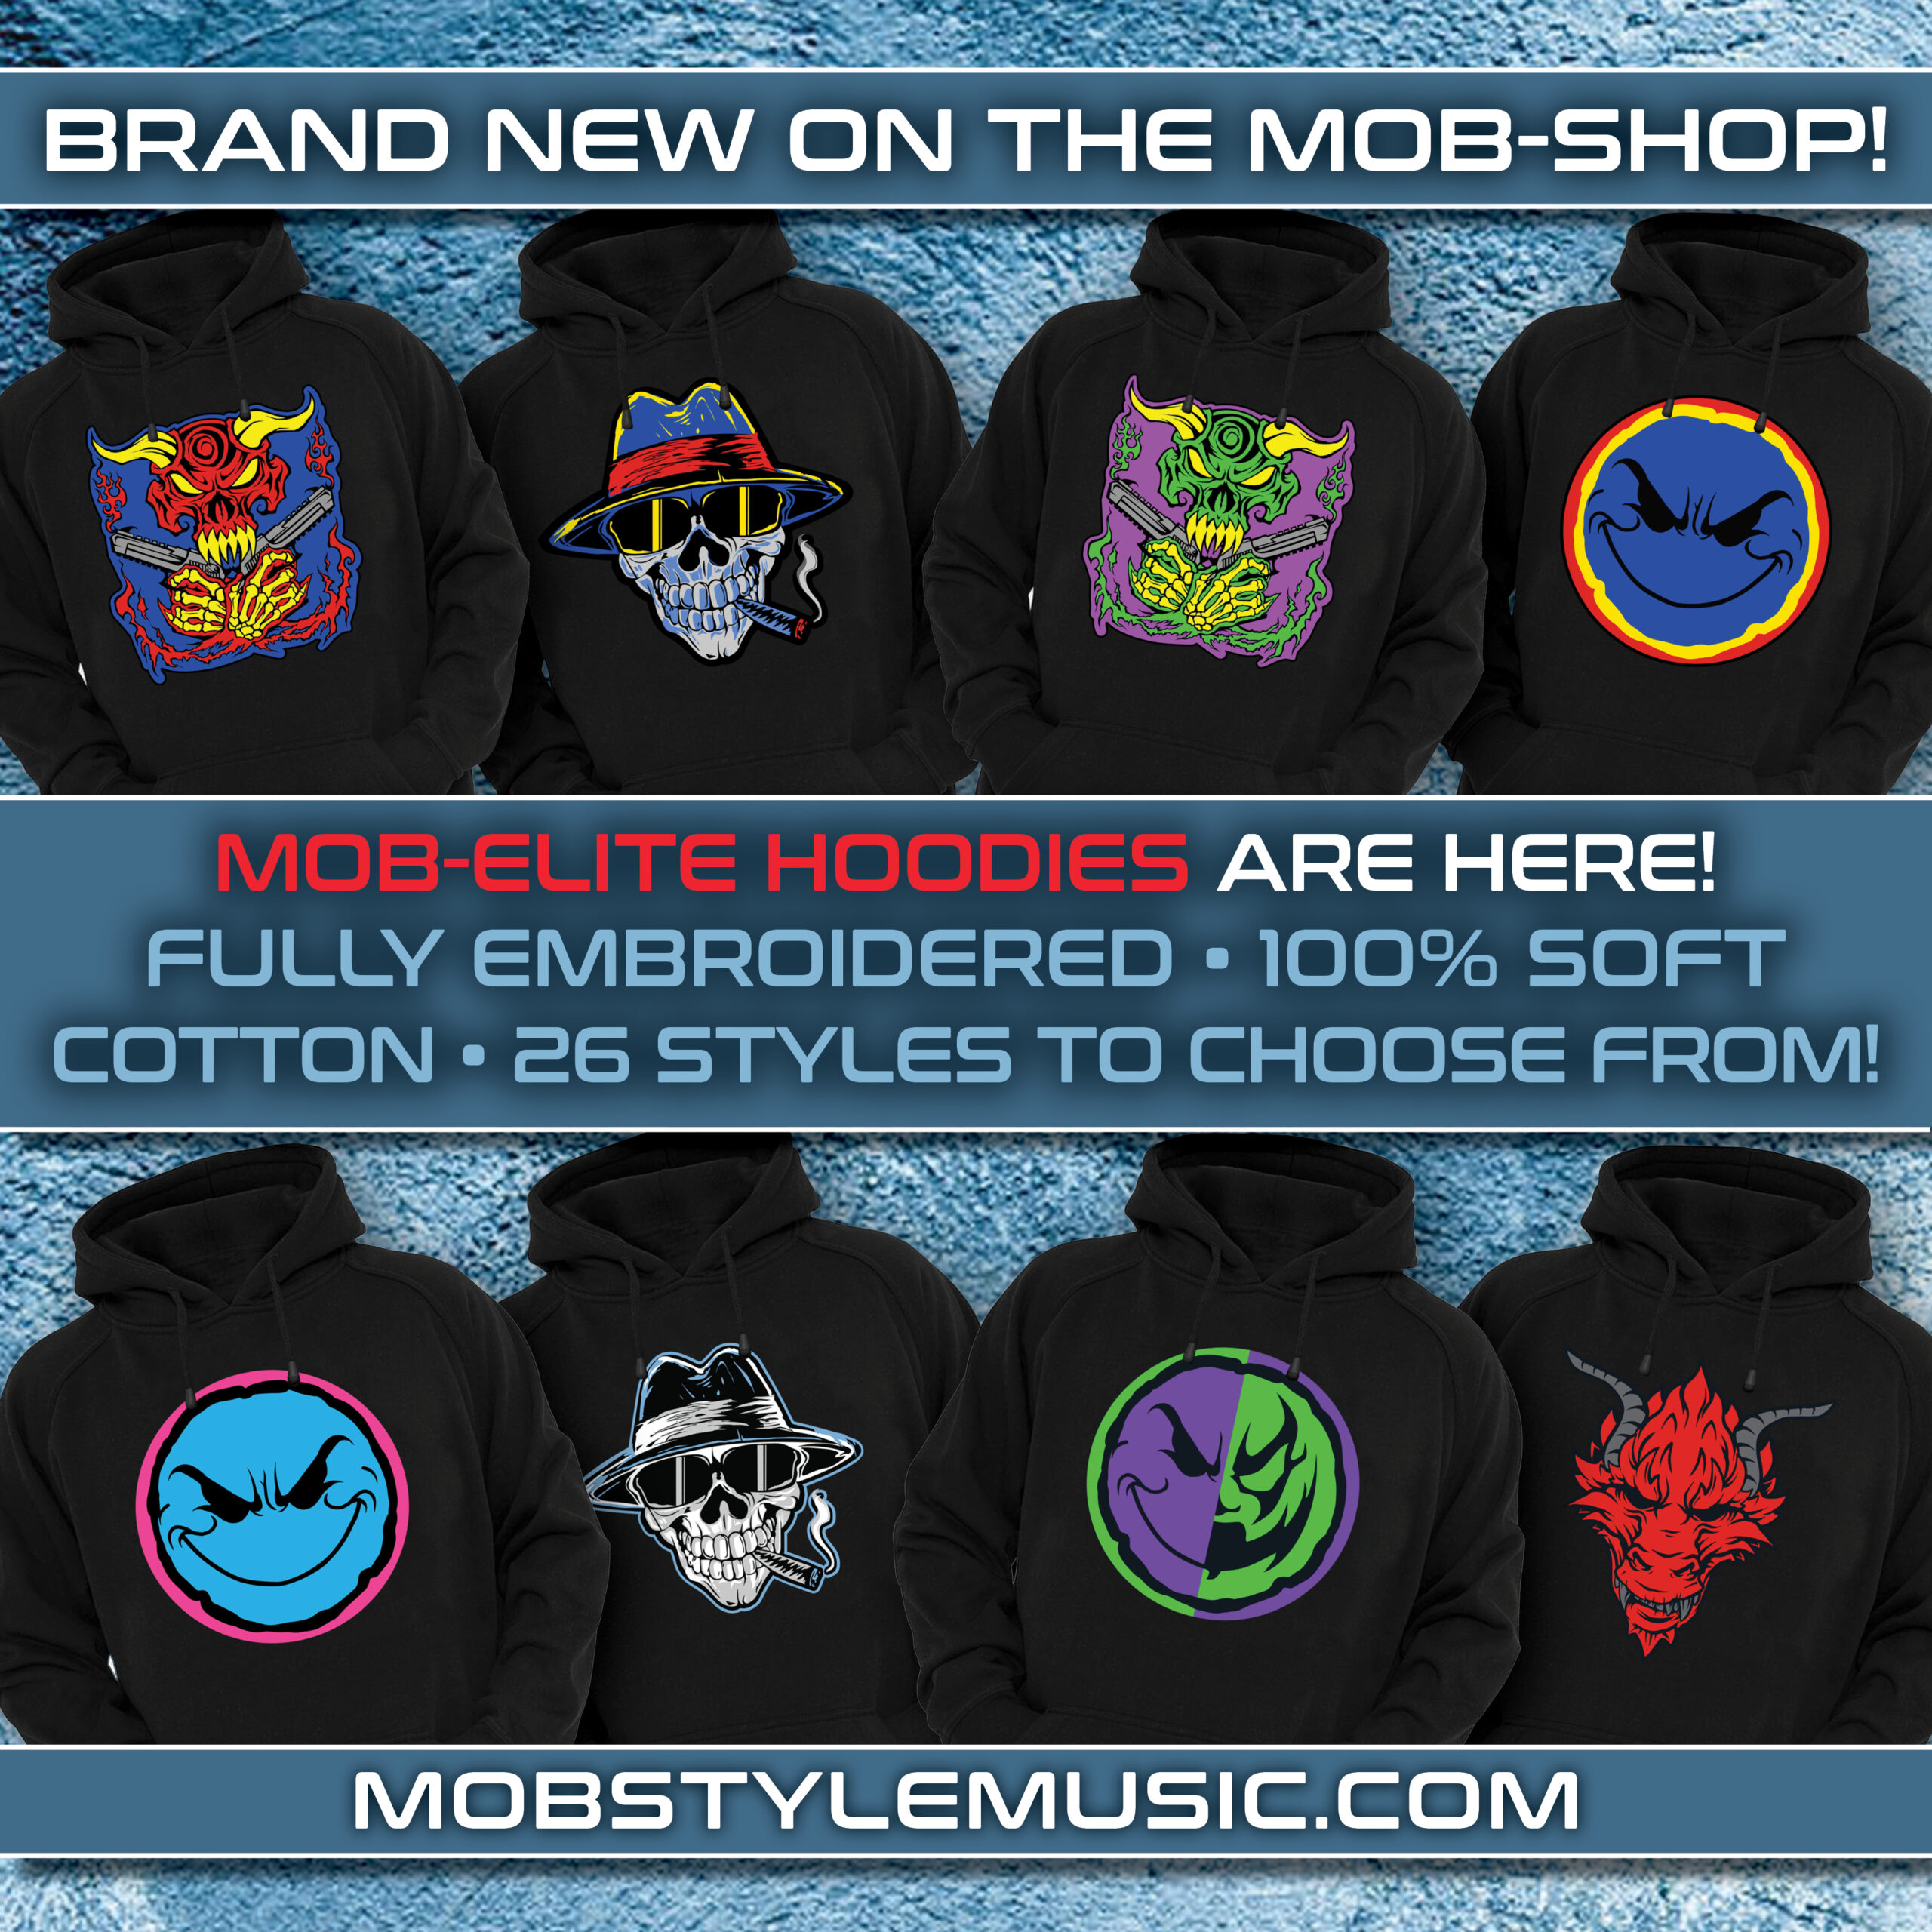 Mob-Elite Pull Over Embroidered Hoodie – 28 Styles To Choose From!